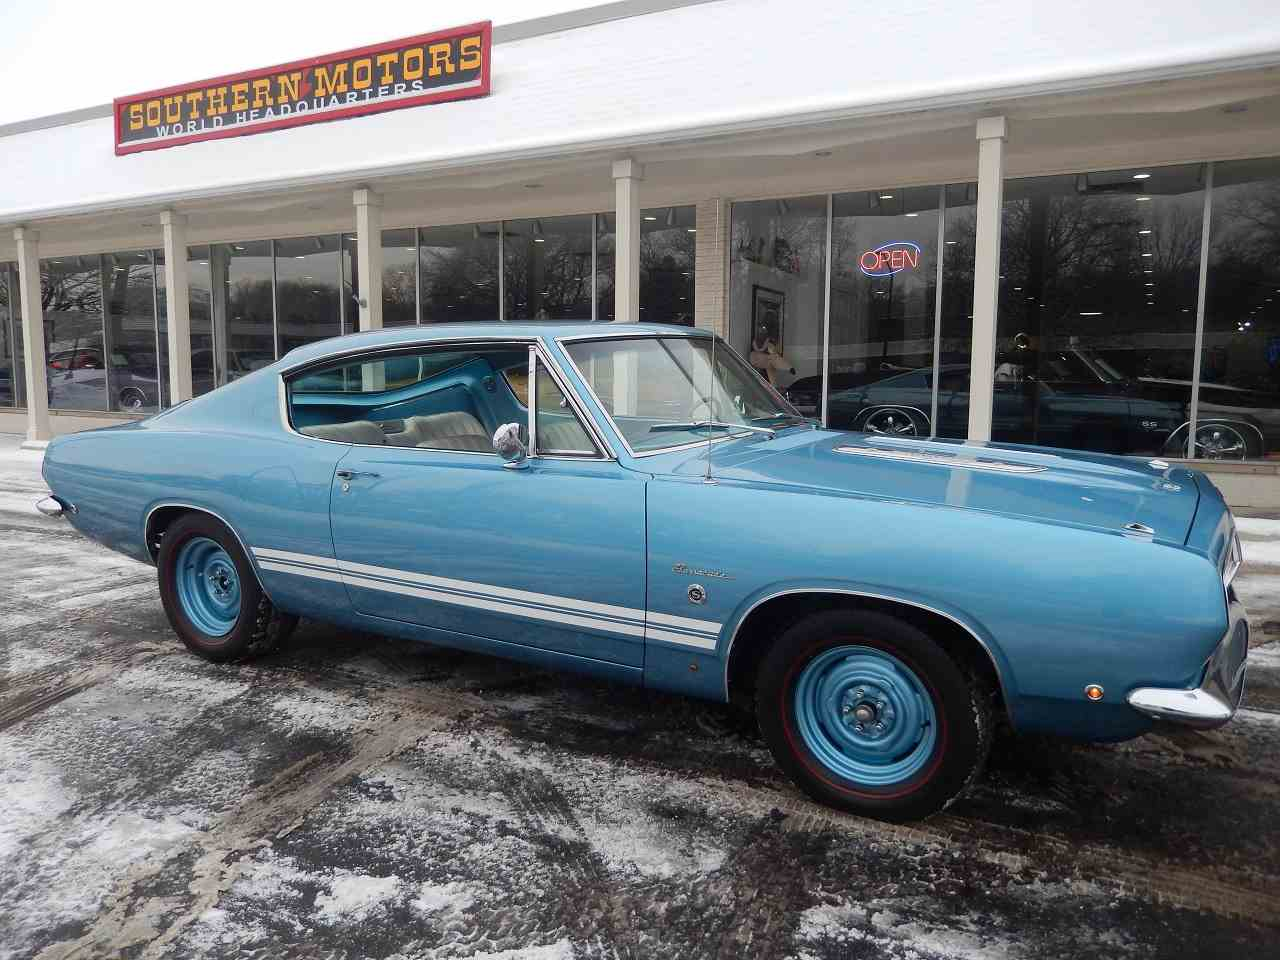 1968 Plymouth Barracuda for Sale on ClassicCars.com